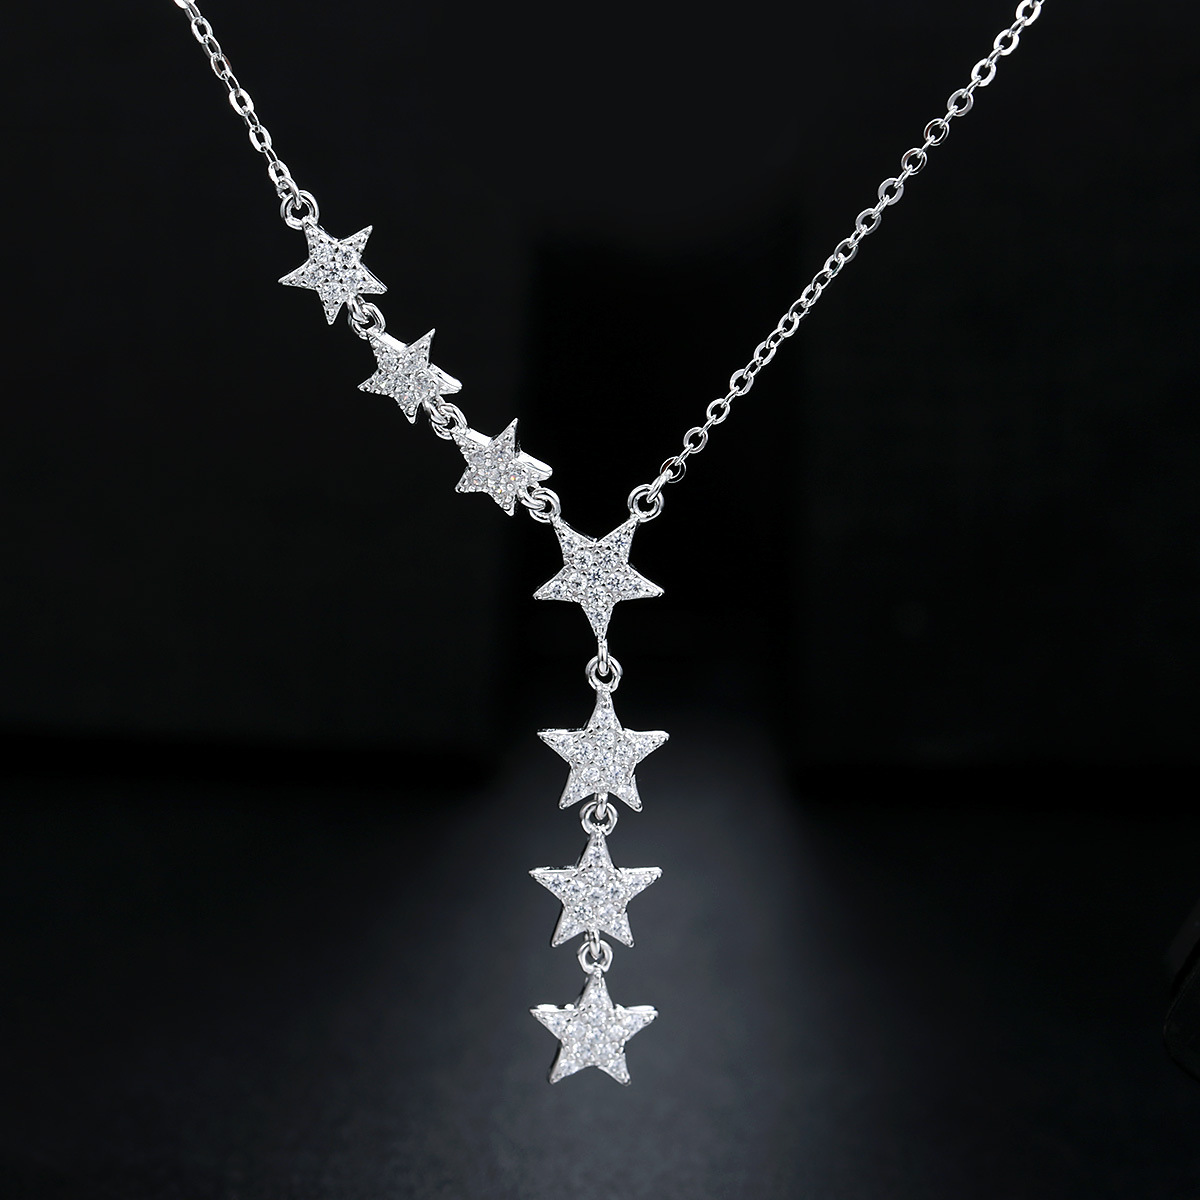 Dropship 2019 New Fashion Simple Star String S925 Sterling Silver Clavicle Chain Ladies Necklace AAA Zircon Pendant Jewelry